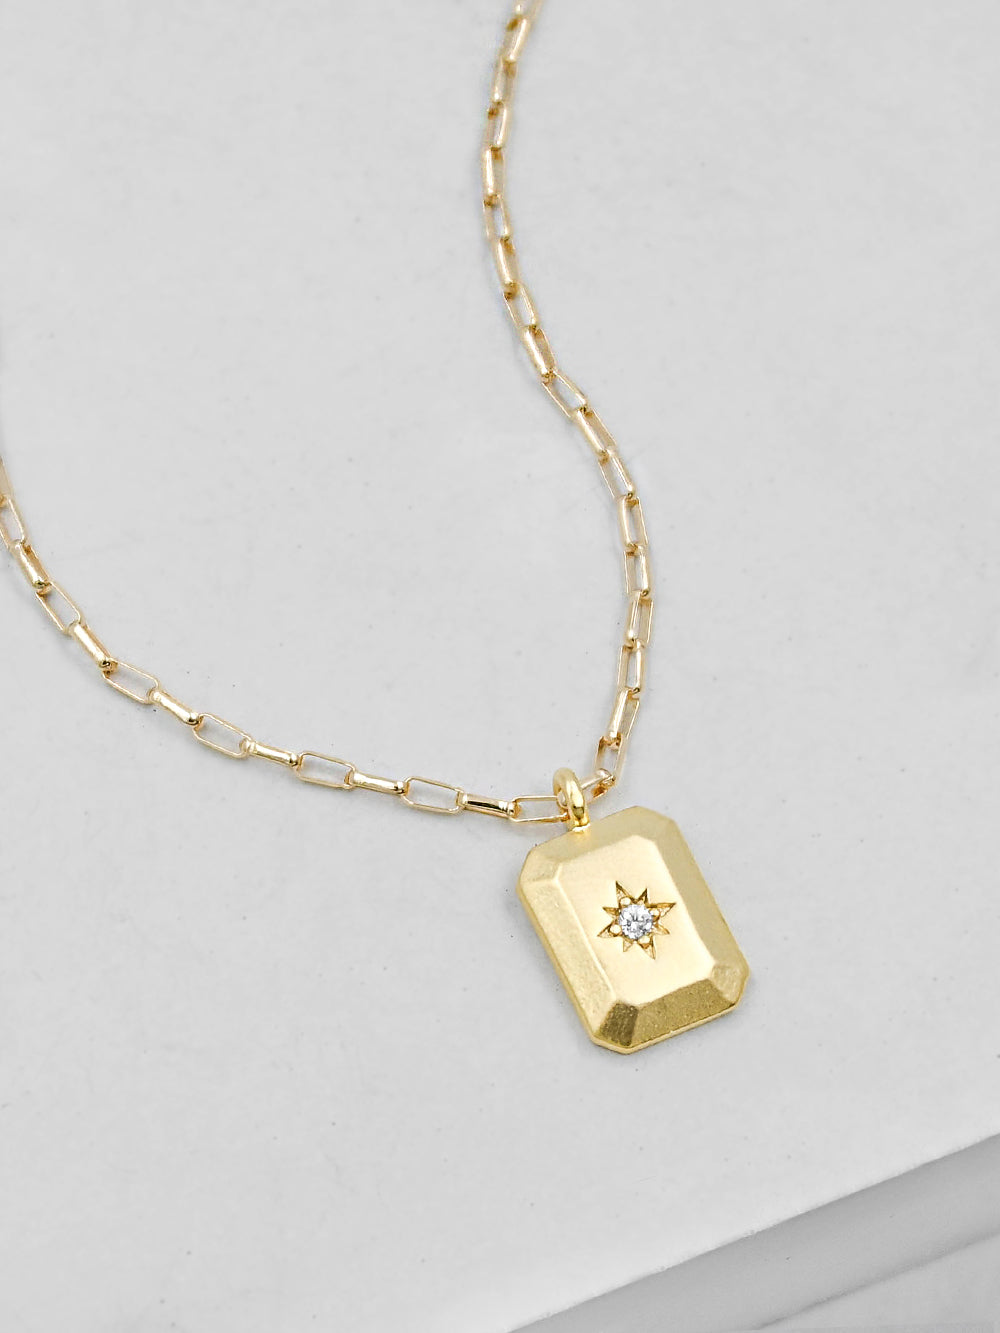 North star Tag Gold Necklace by The Faint Hearted Jewelry